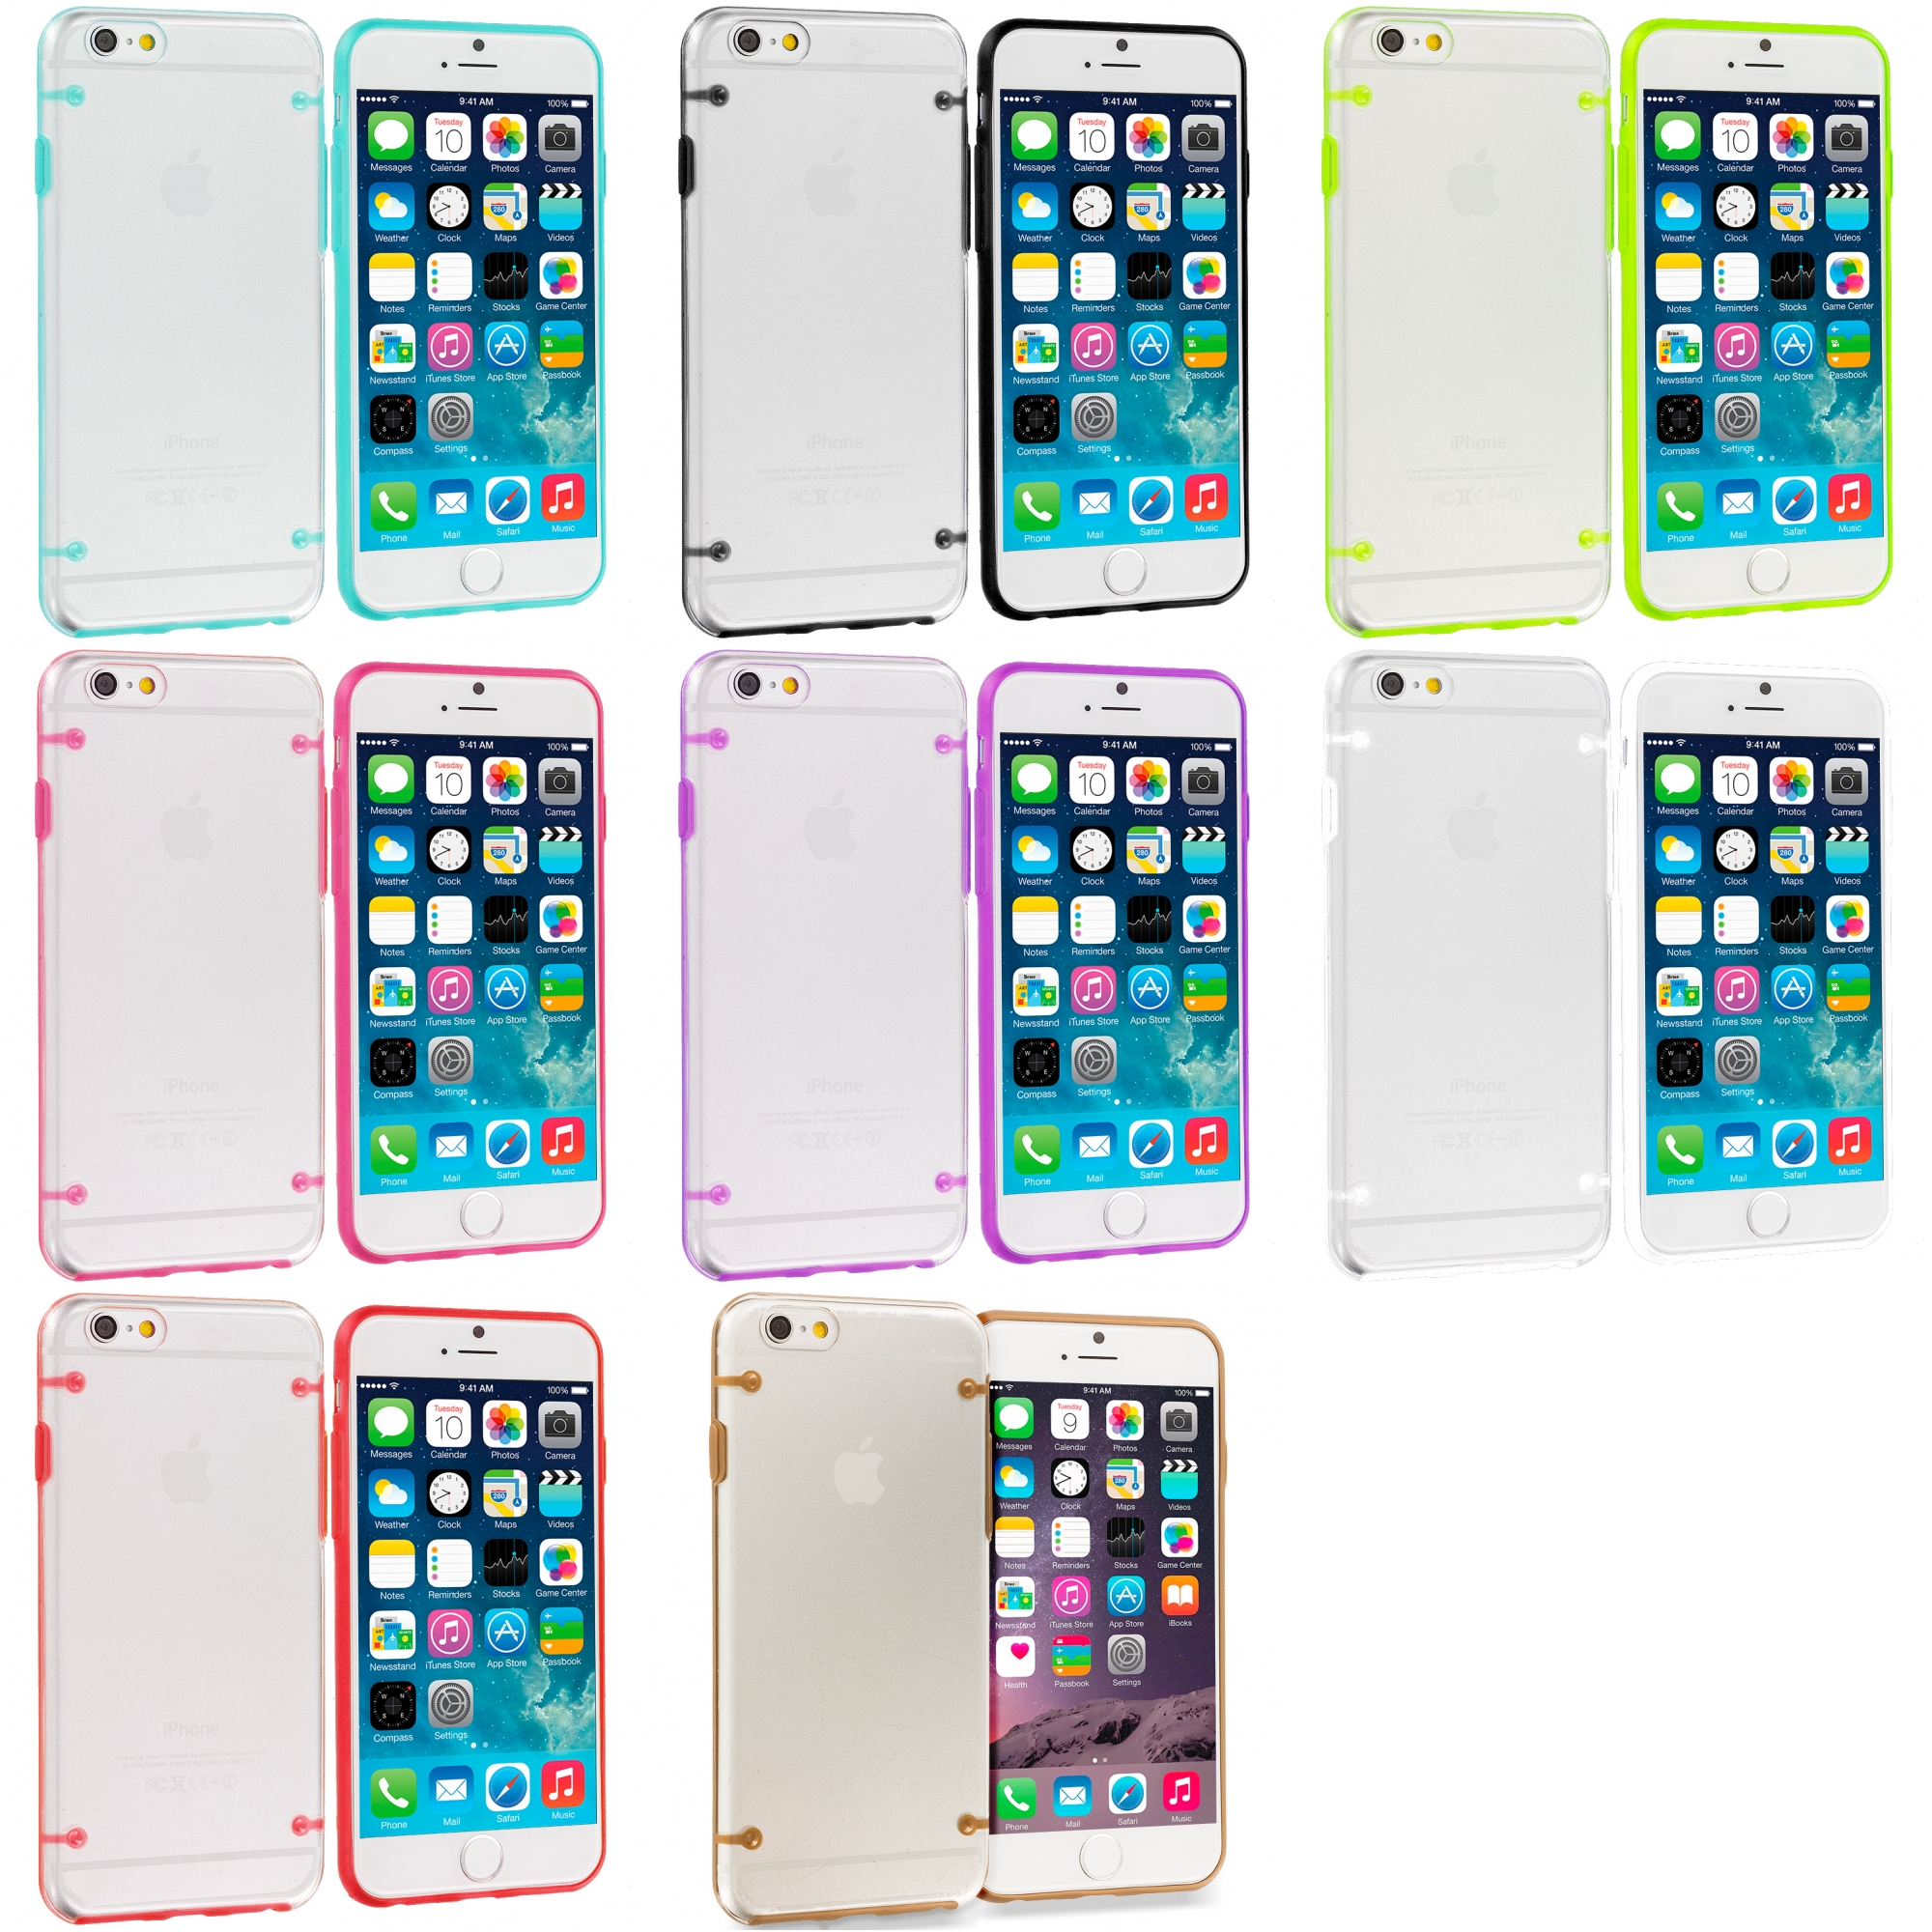 Apple iPhone 6 Plus 6S Plus (5.5) 8 in 1 Combo Bundle Pack - Crystal Robot Hard Case Cover